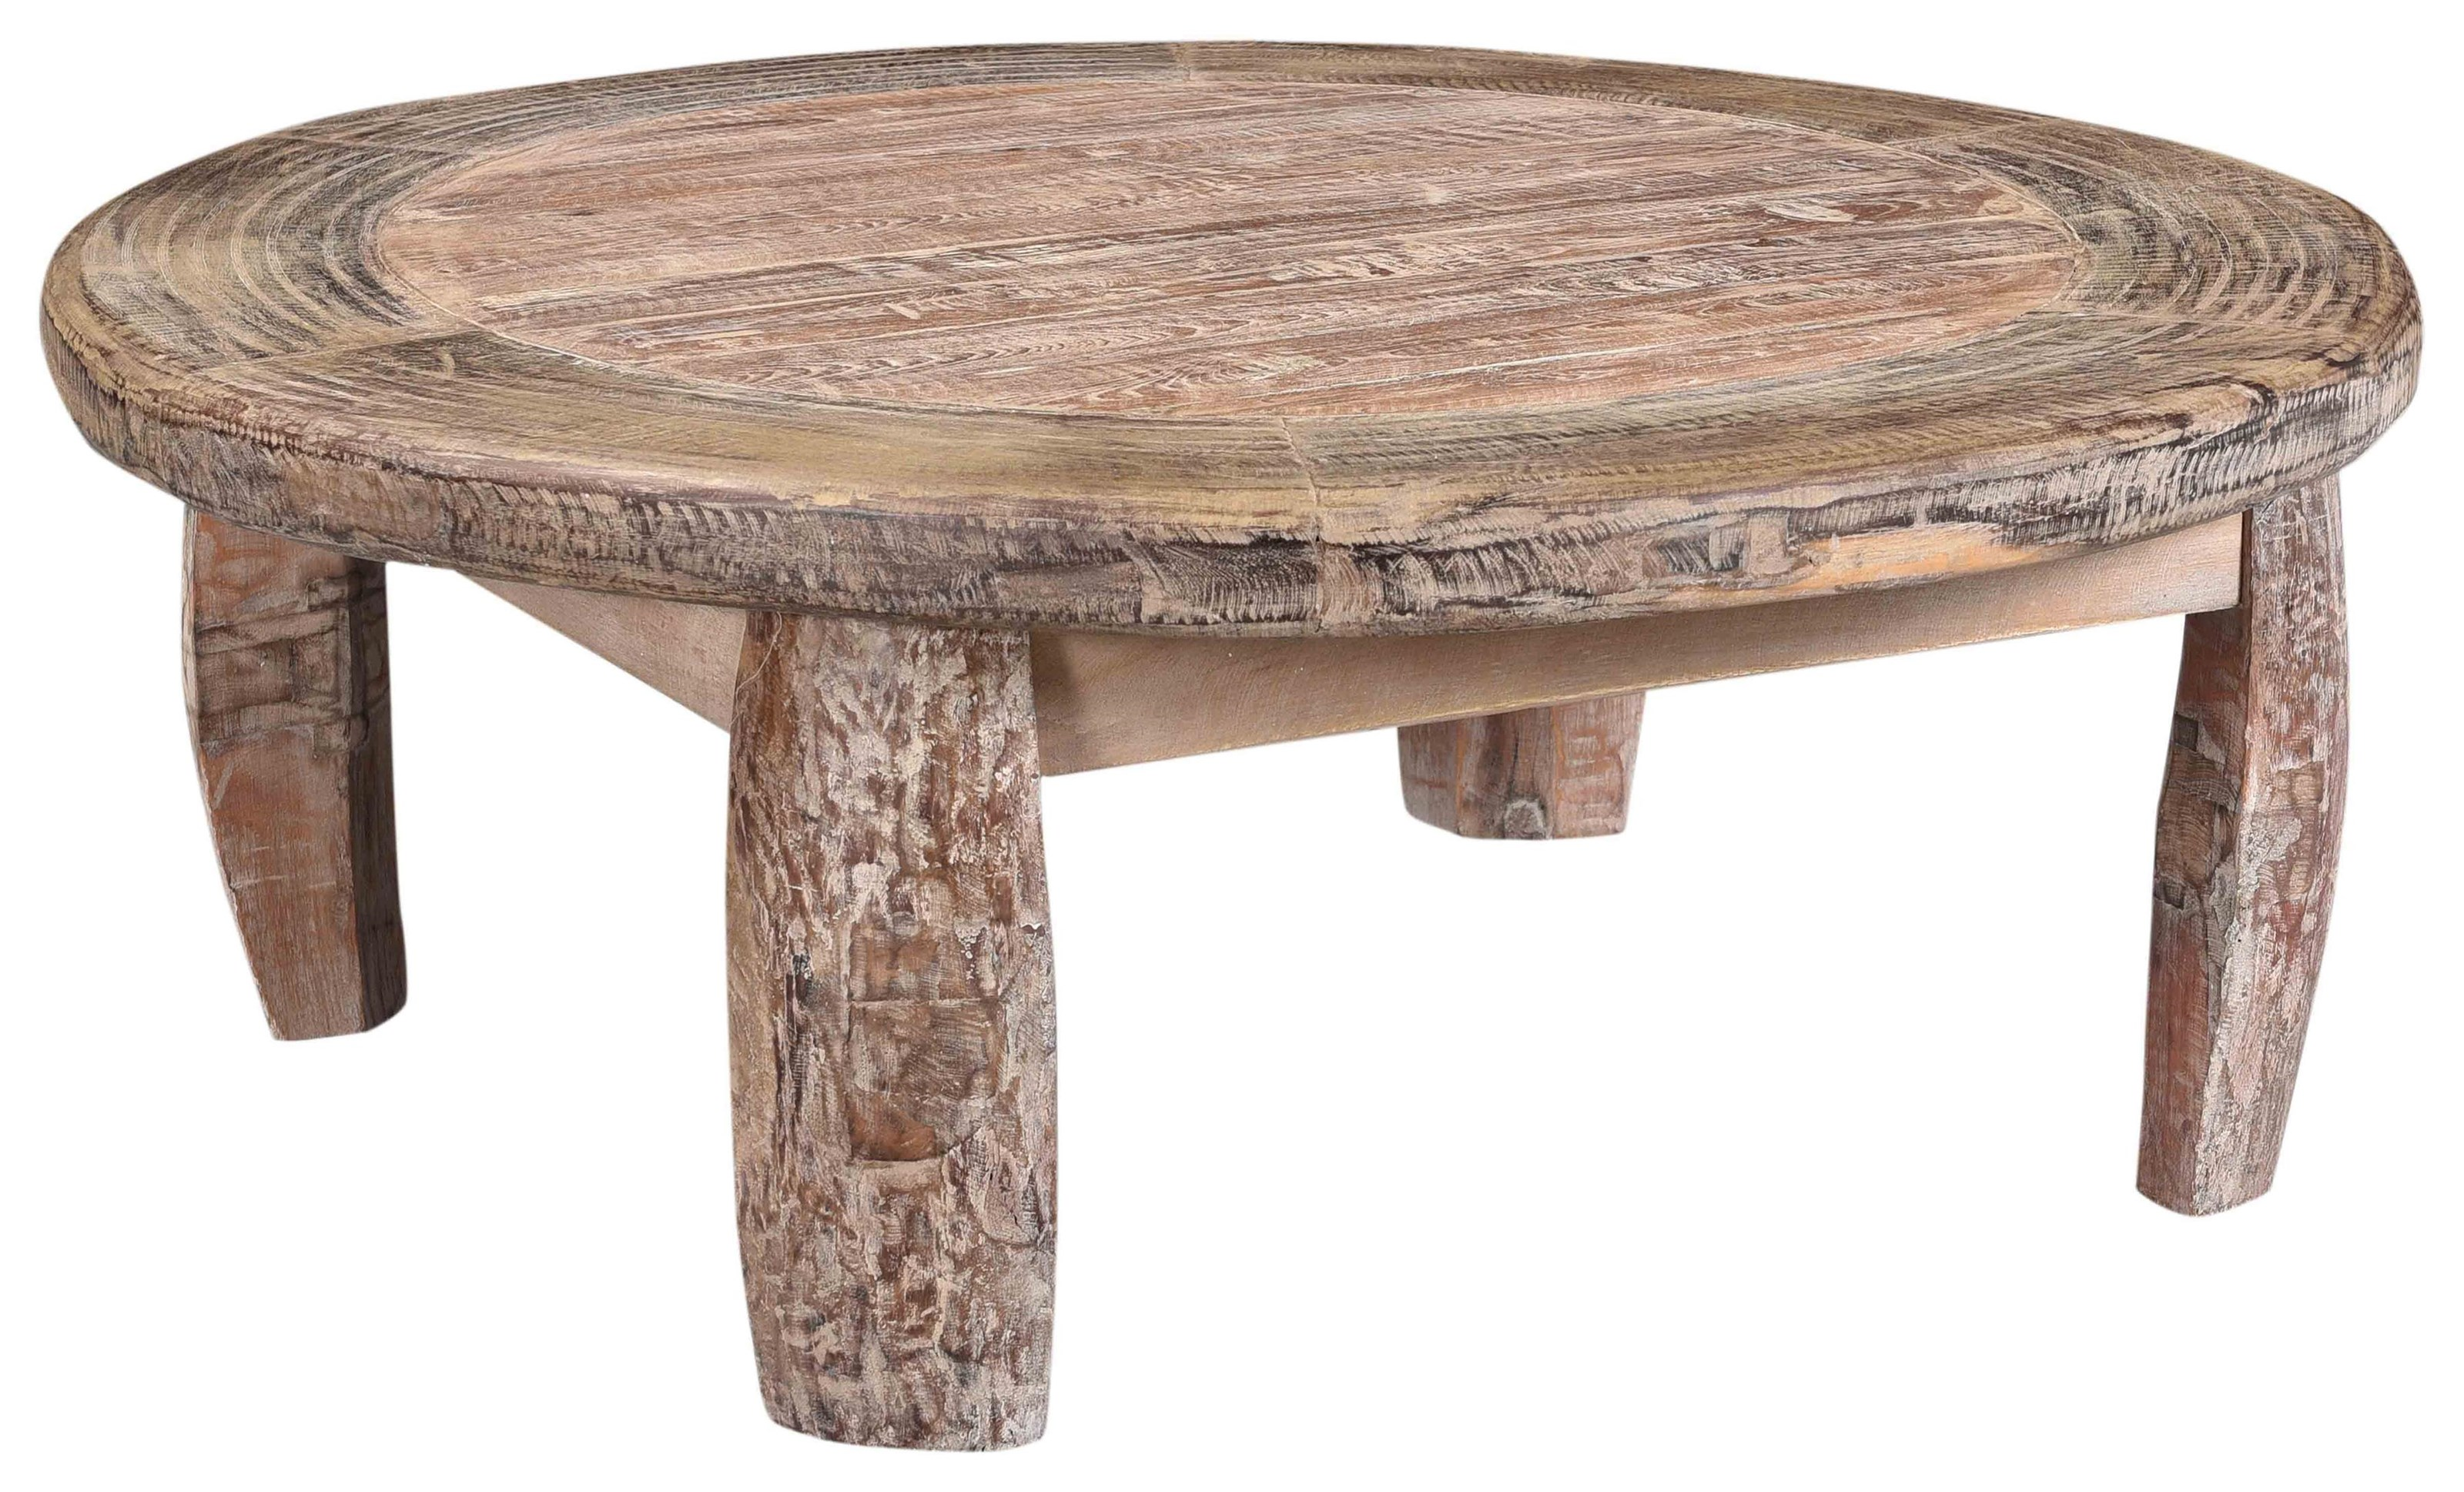 Some-of-a-Kinds Round Coffee Table by Classic Home at Baer's Furniture